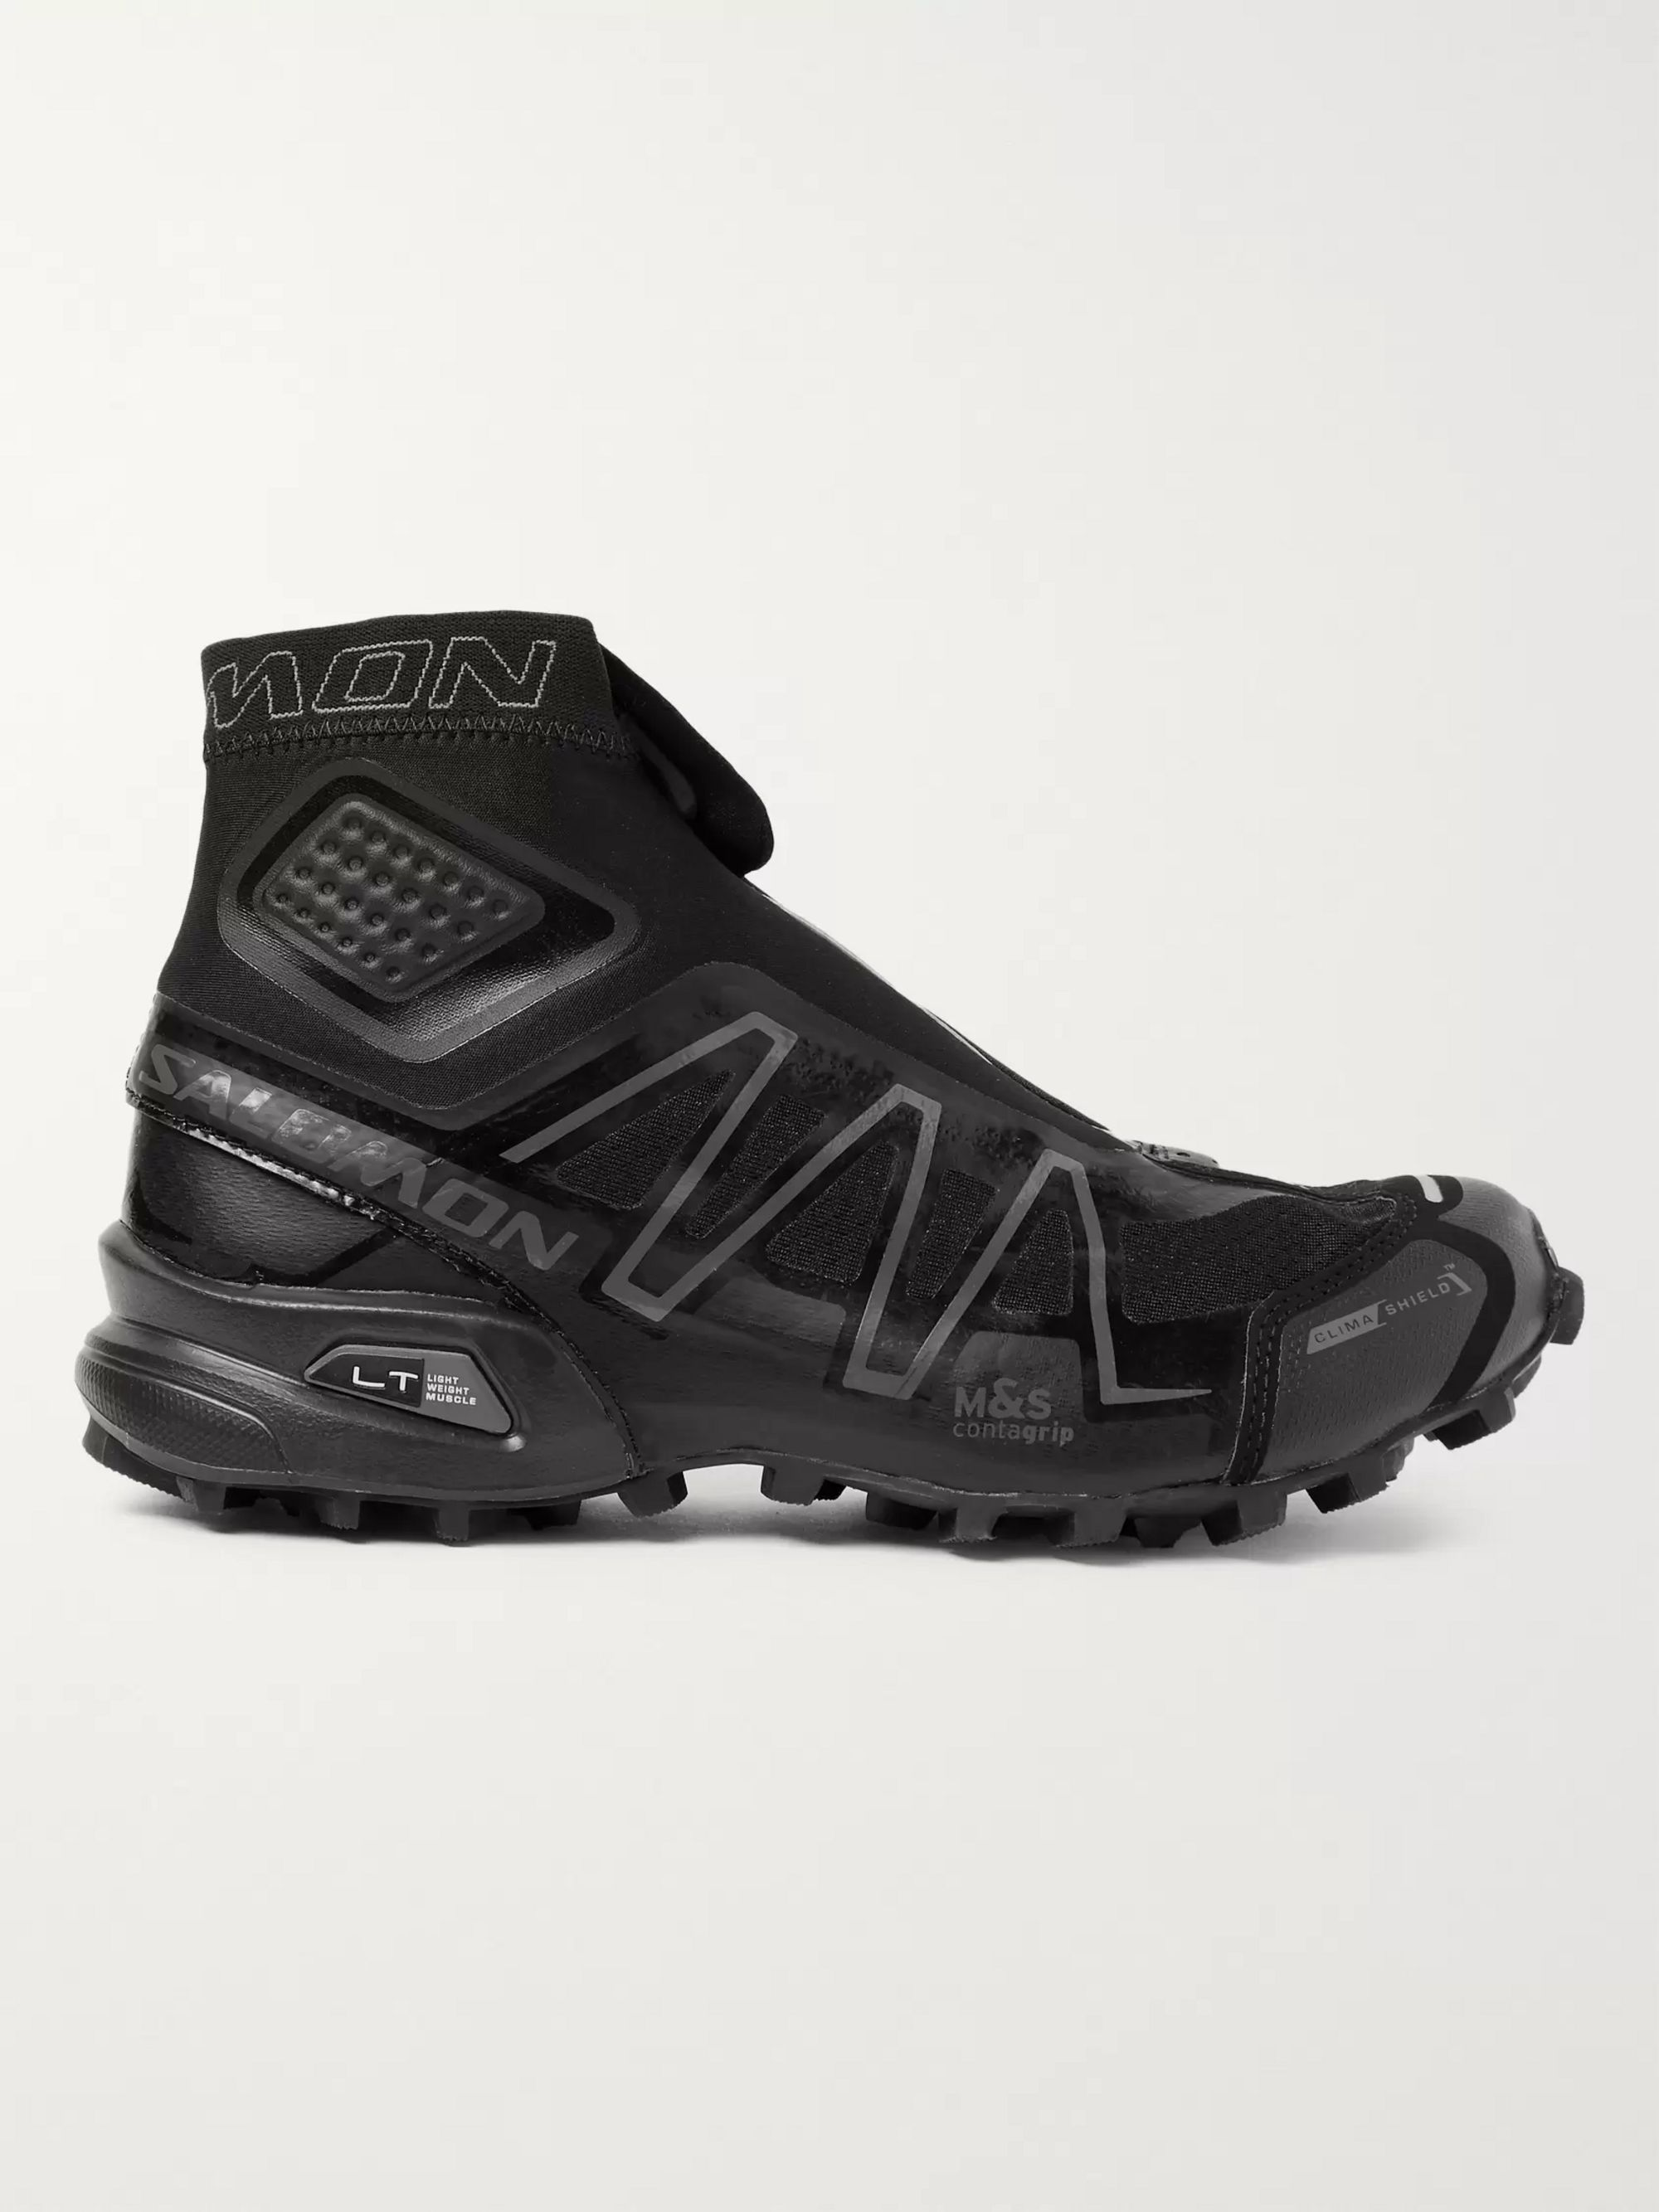 separation shoes 7f8b7 4cf51 Snowcross Mesh and Neoprene Boots